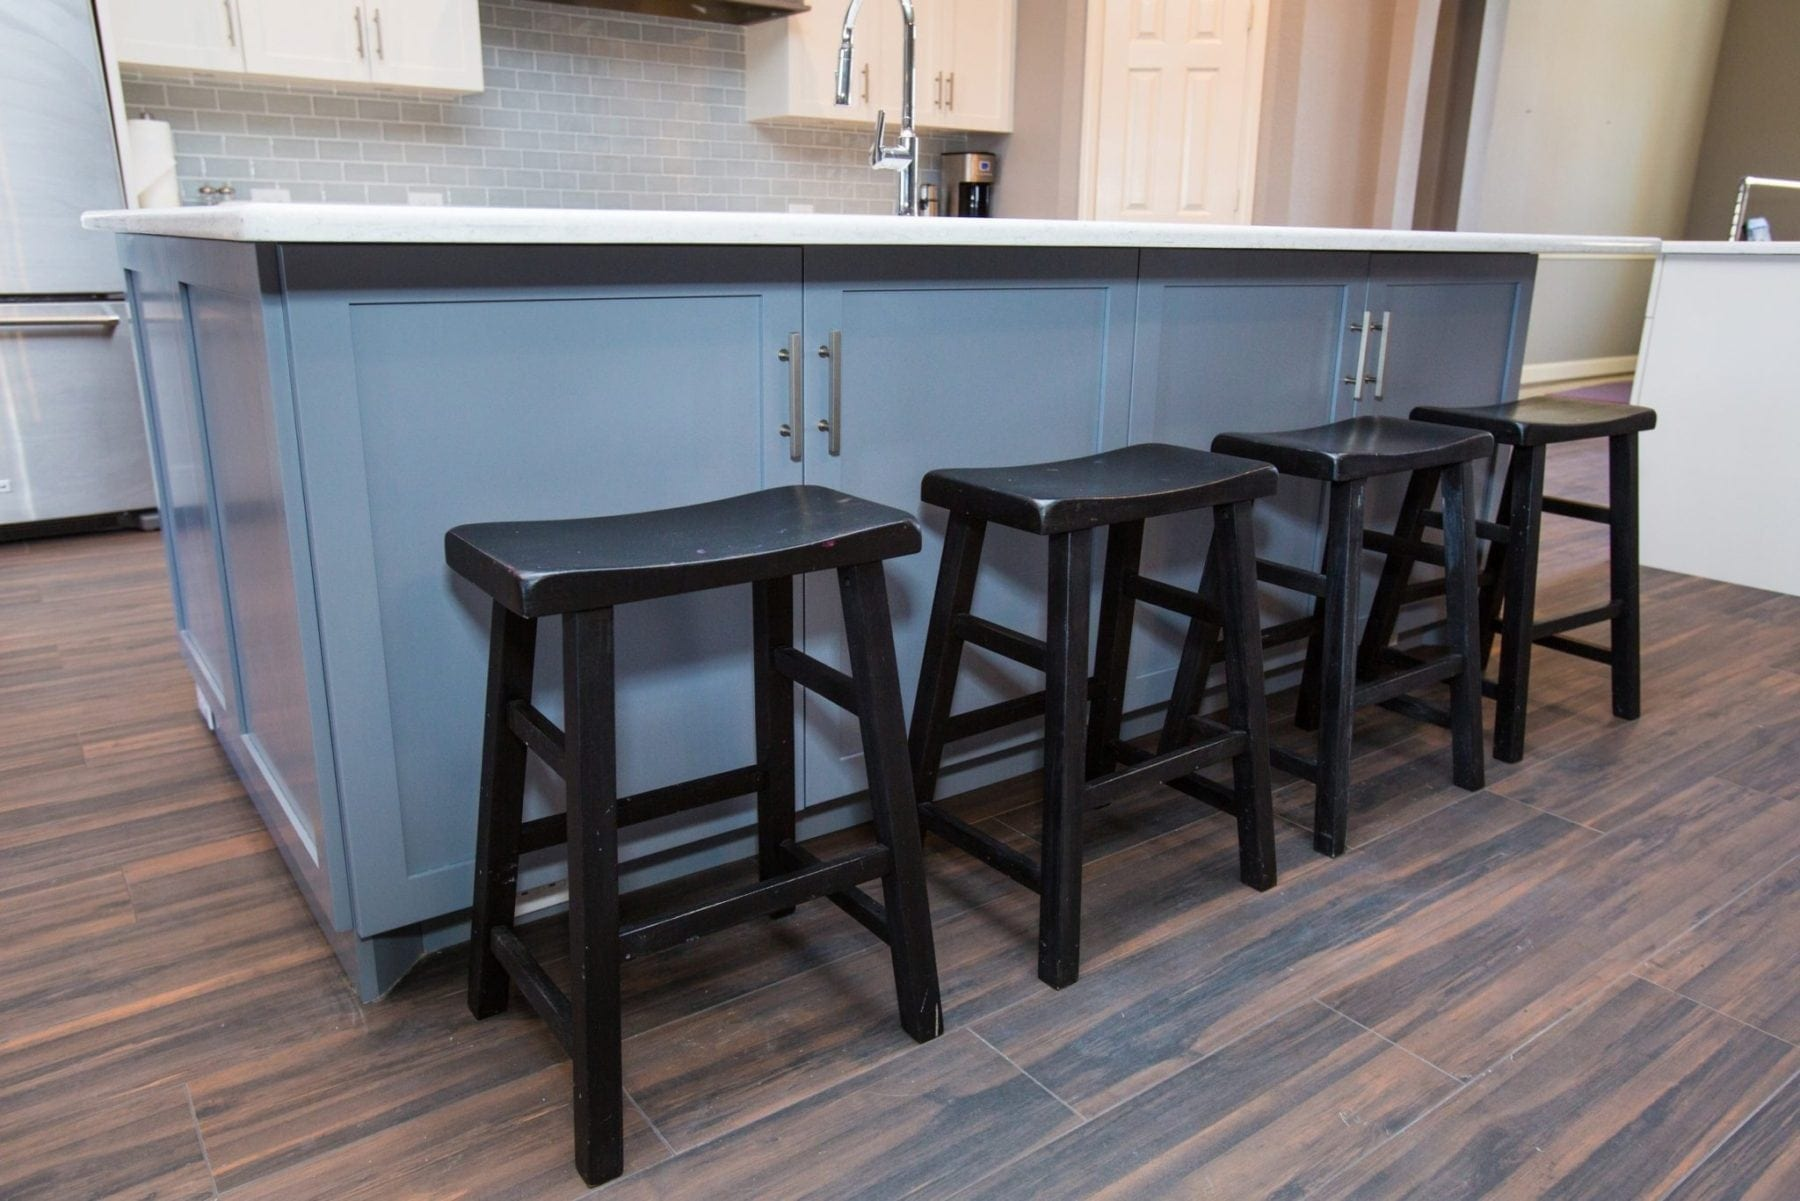 kitchen remodel dallas cheap rooster decor for after renowned mountain creek 75236 024